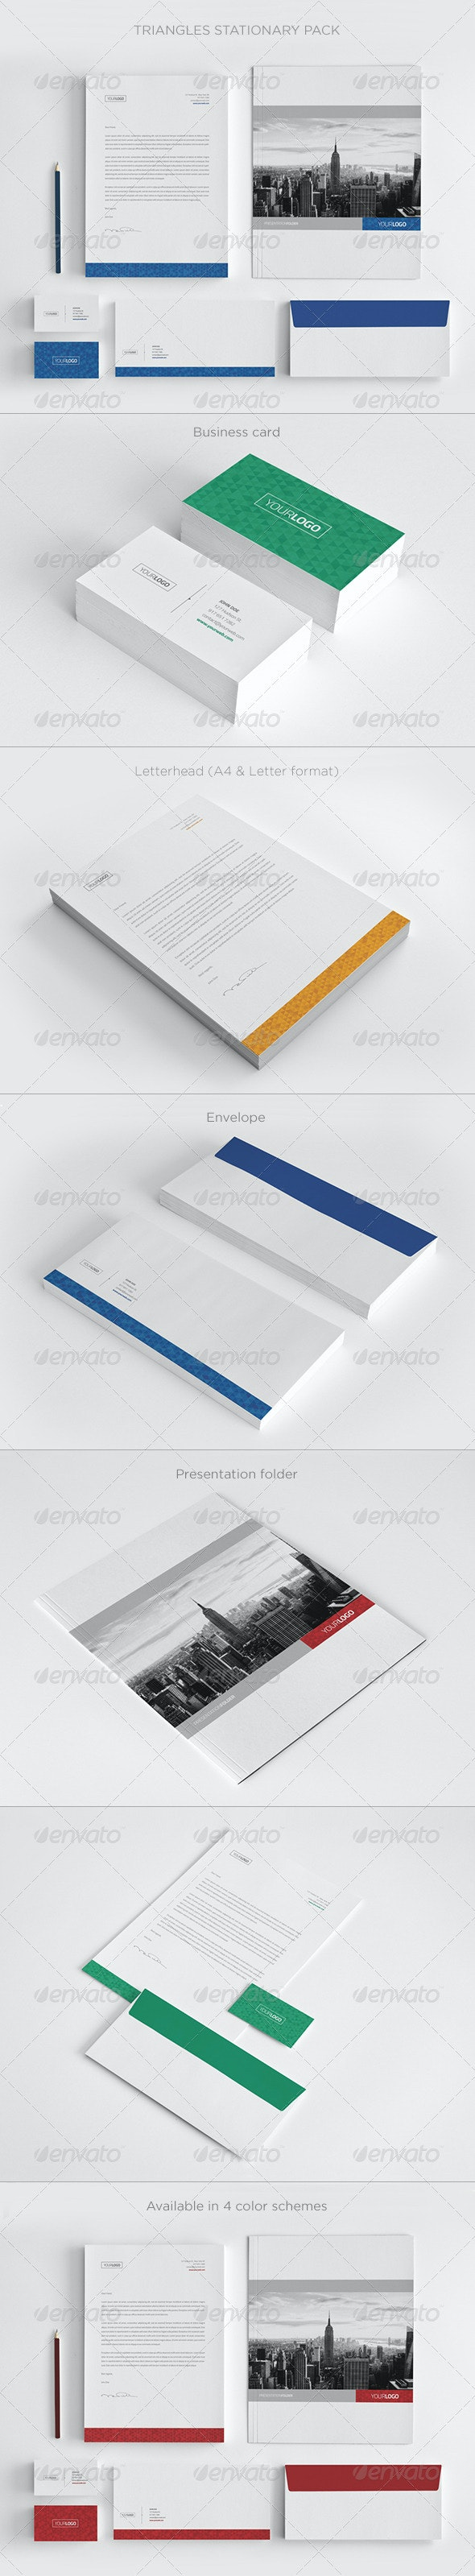 Real Estate Stationary Pack - Stationery Print Templates